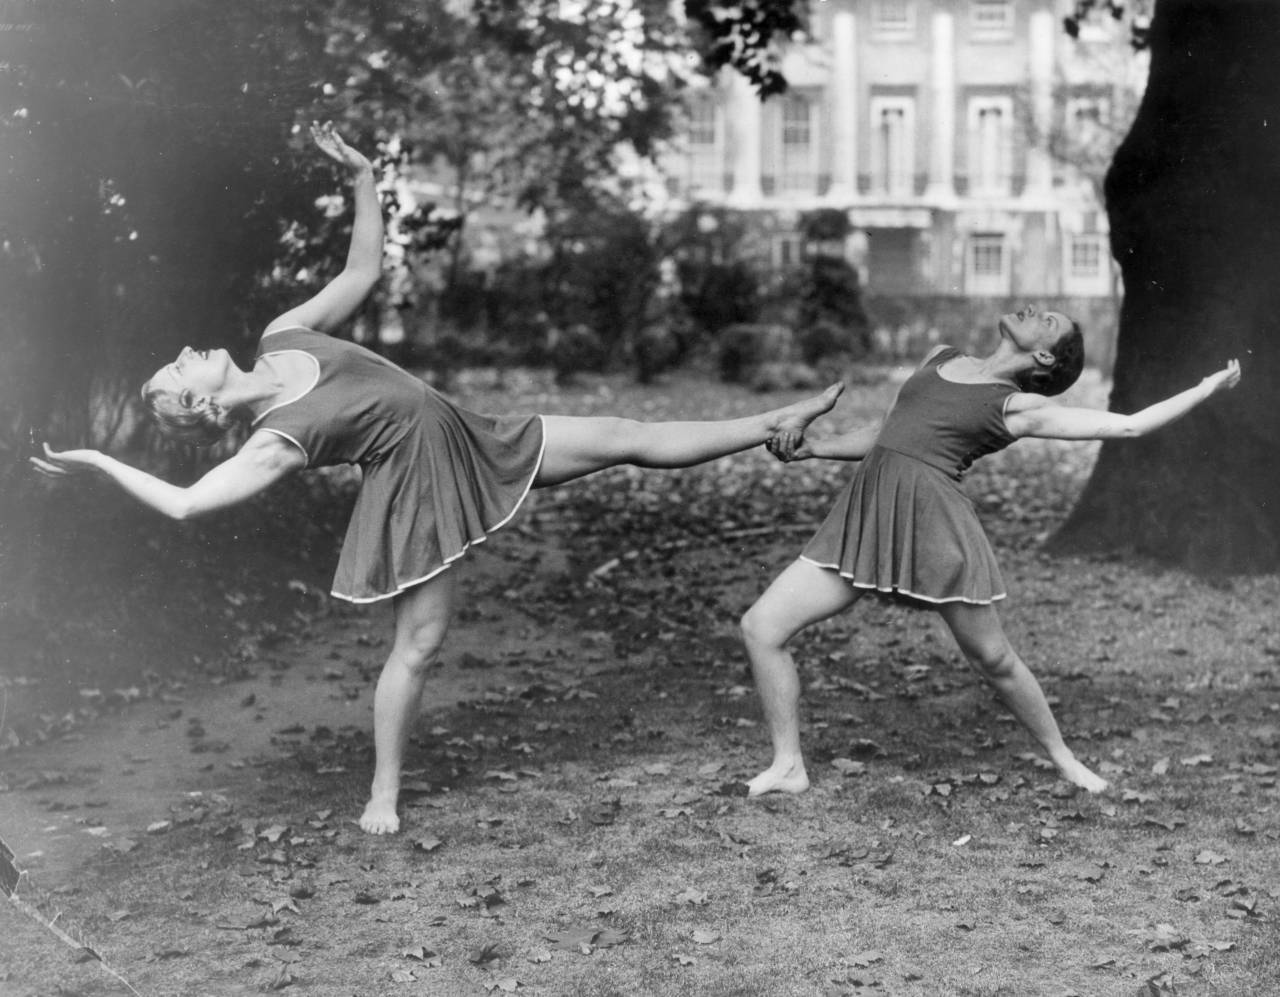 4th October 1937: Two of the international physical culture expert Madame Lauri Alwyn's teachers rehearsing for a keep fit demonstration. (Photo by London Express/Getty Images)